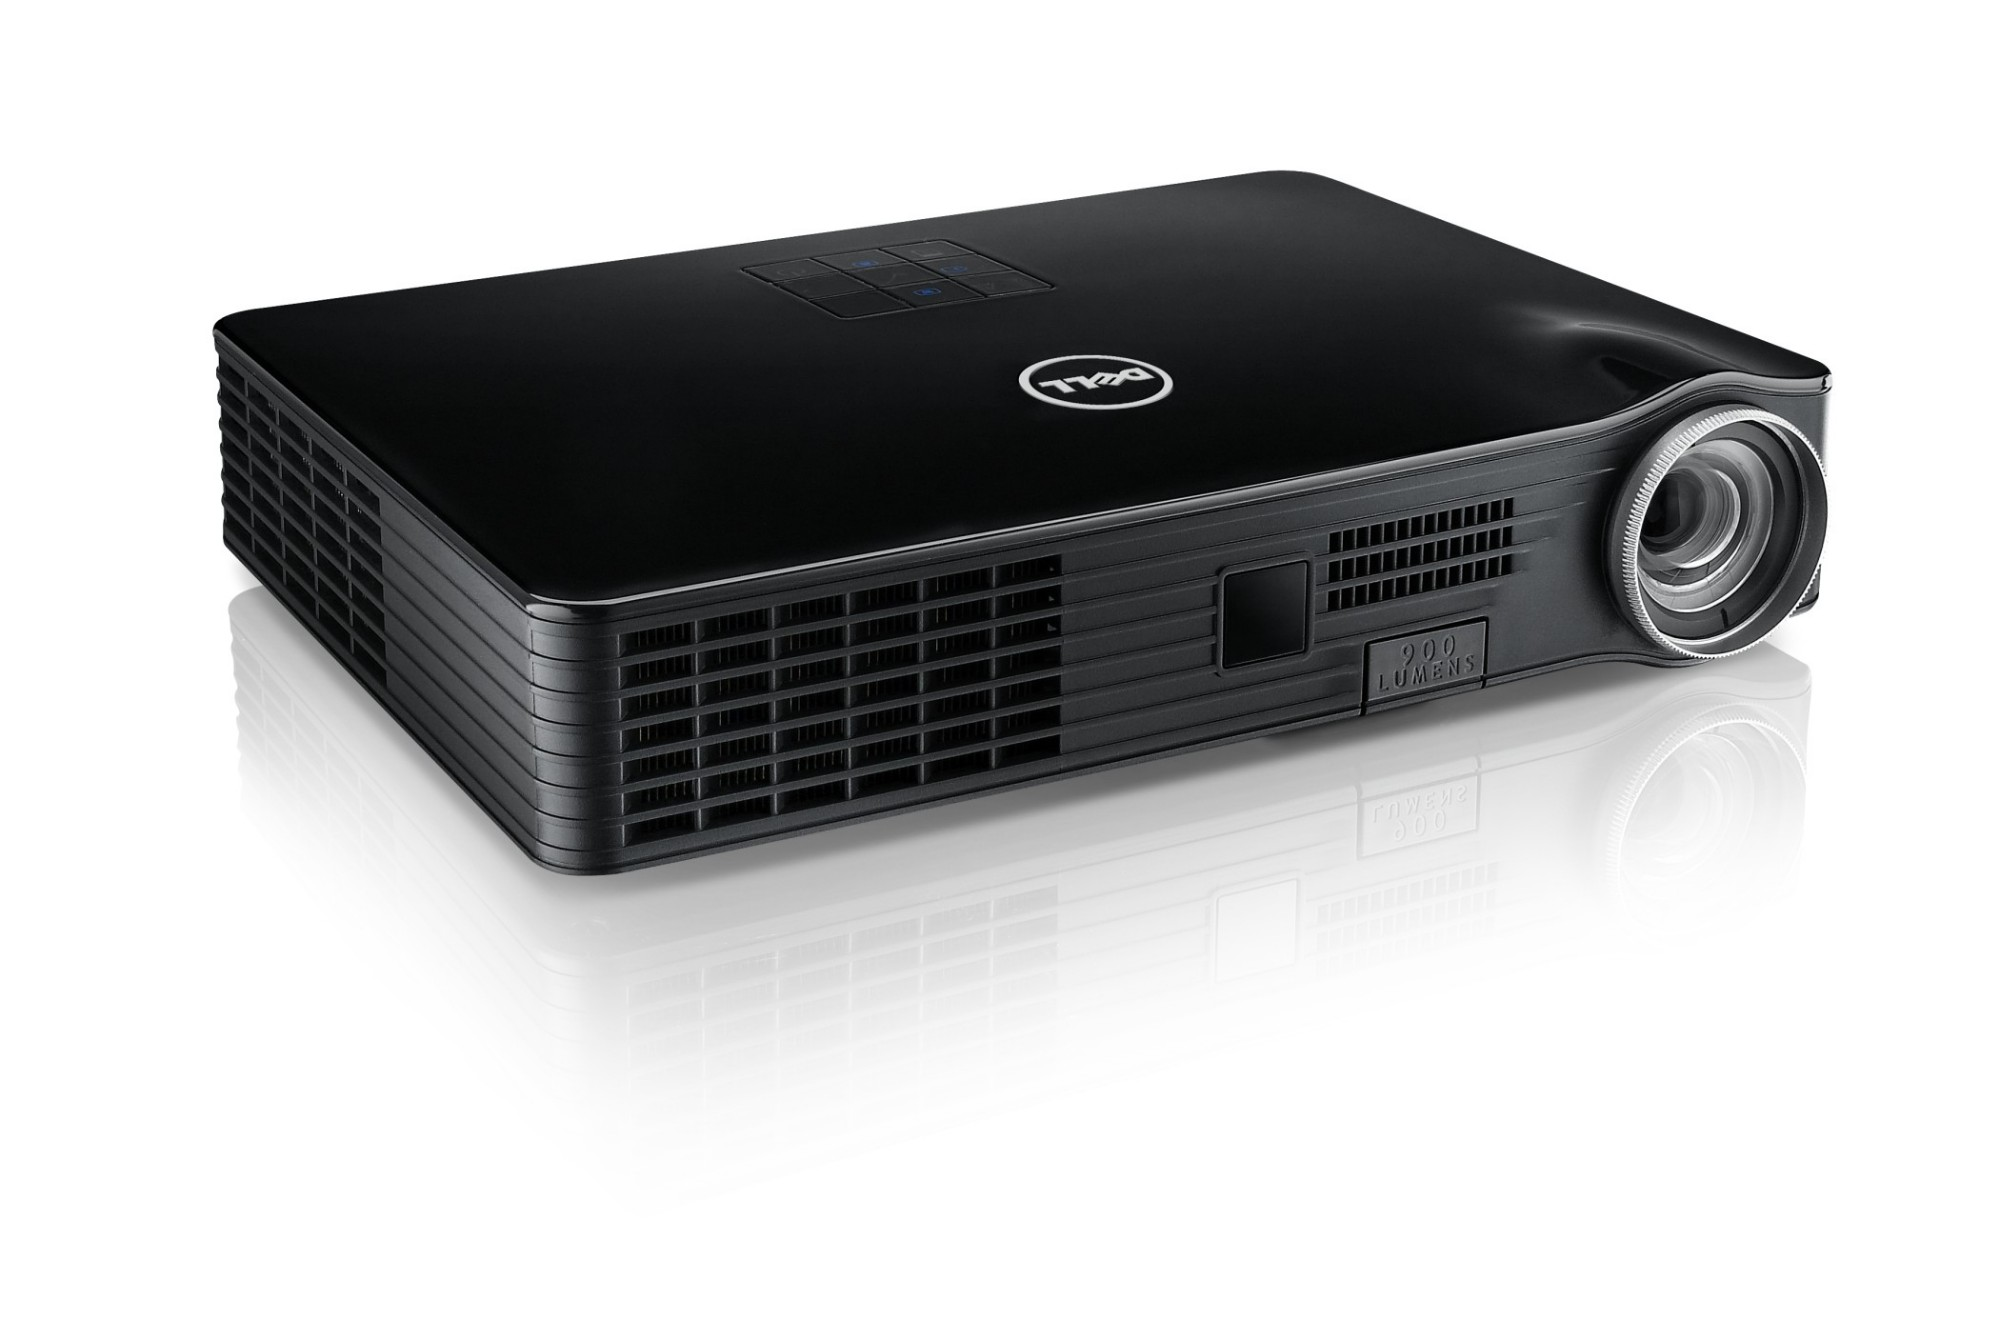 Dell m900hd portable projector 900ansi lumens led wxga for Handheld projector price